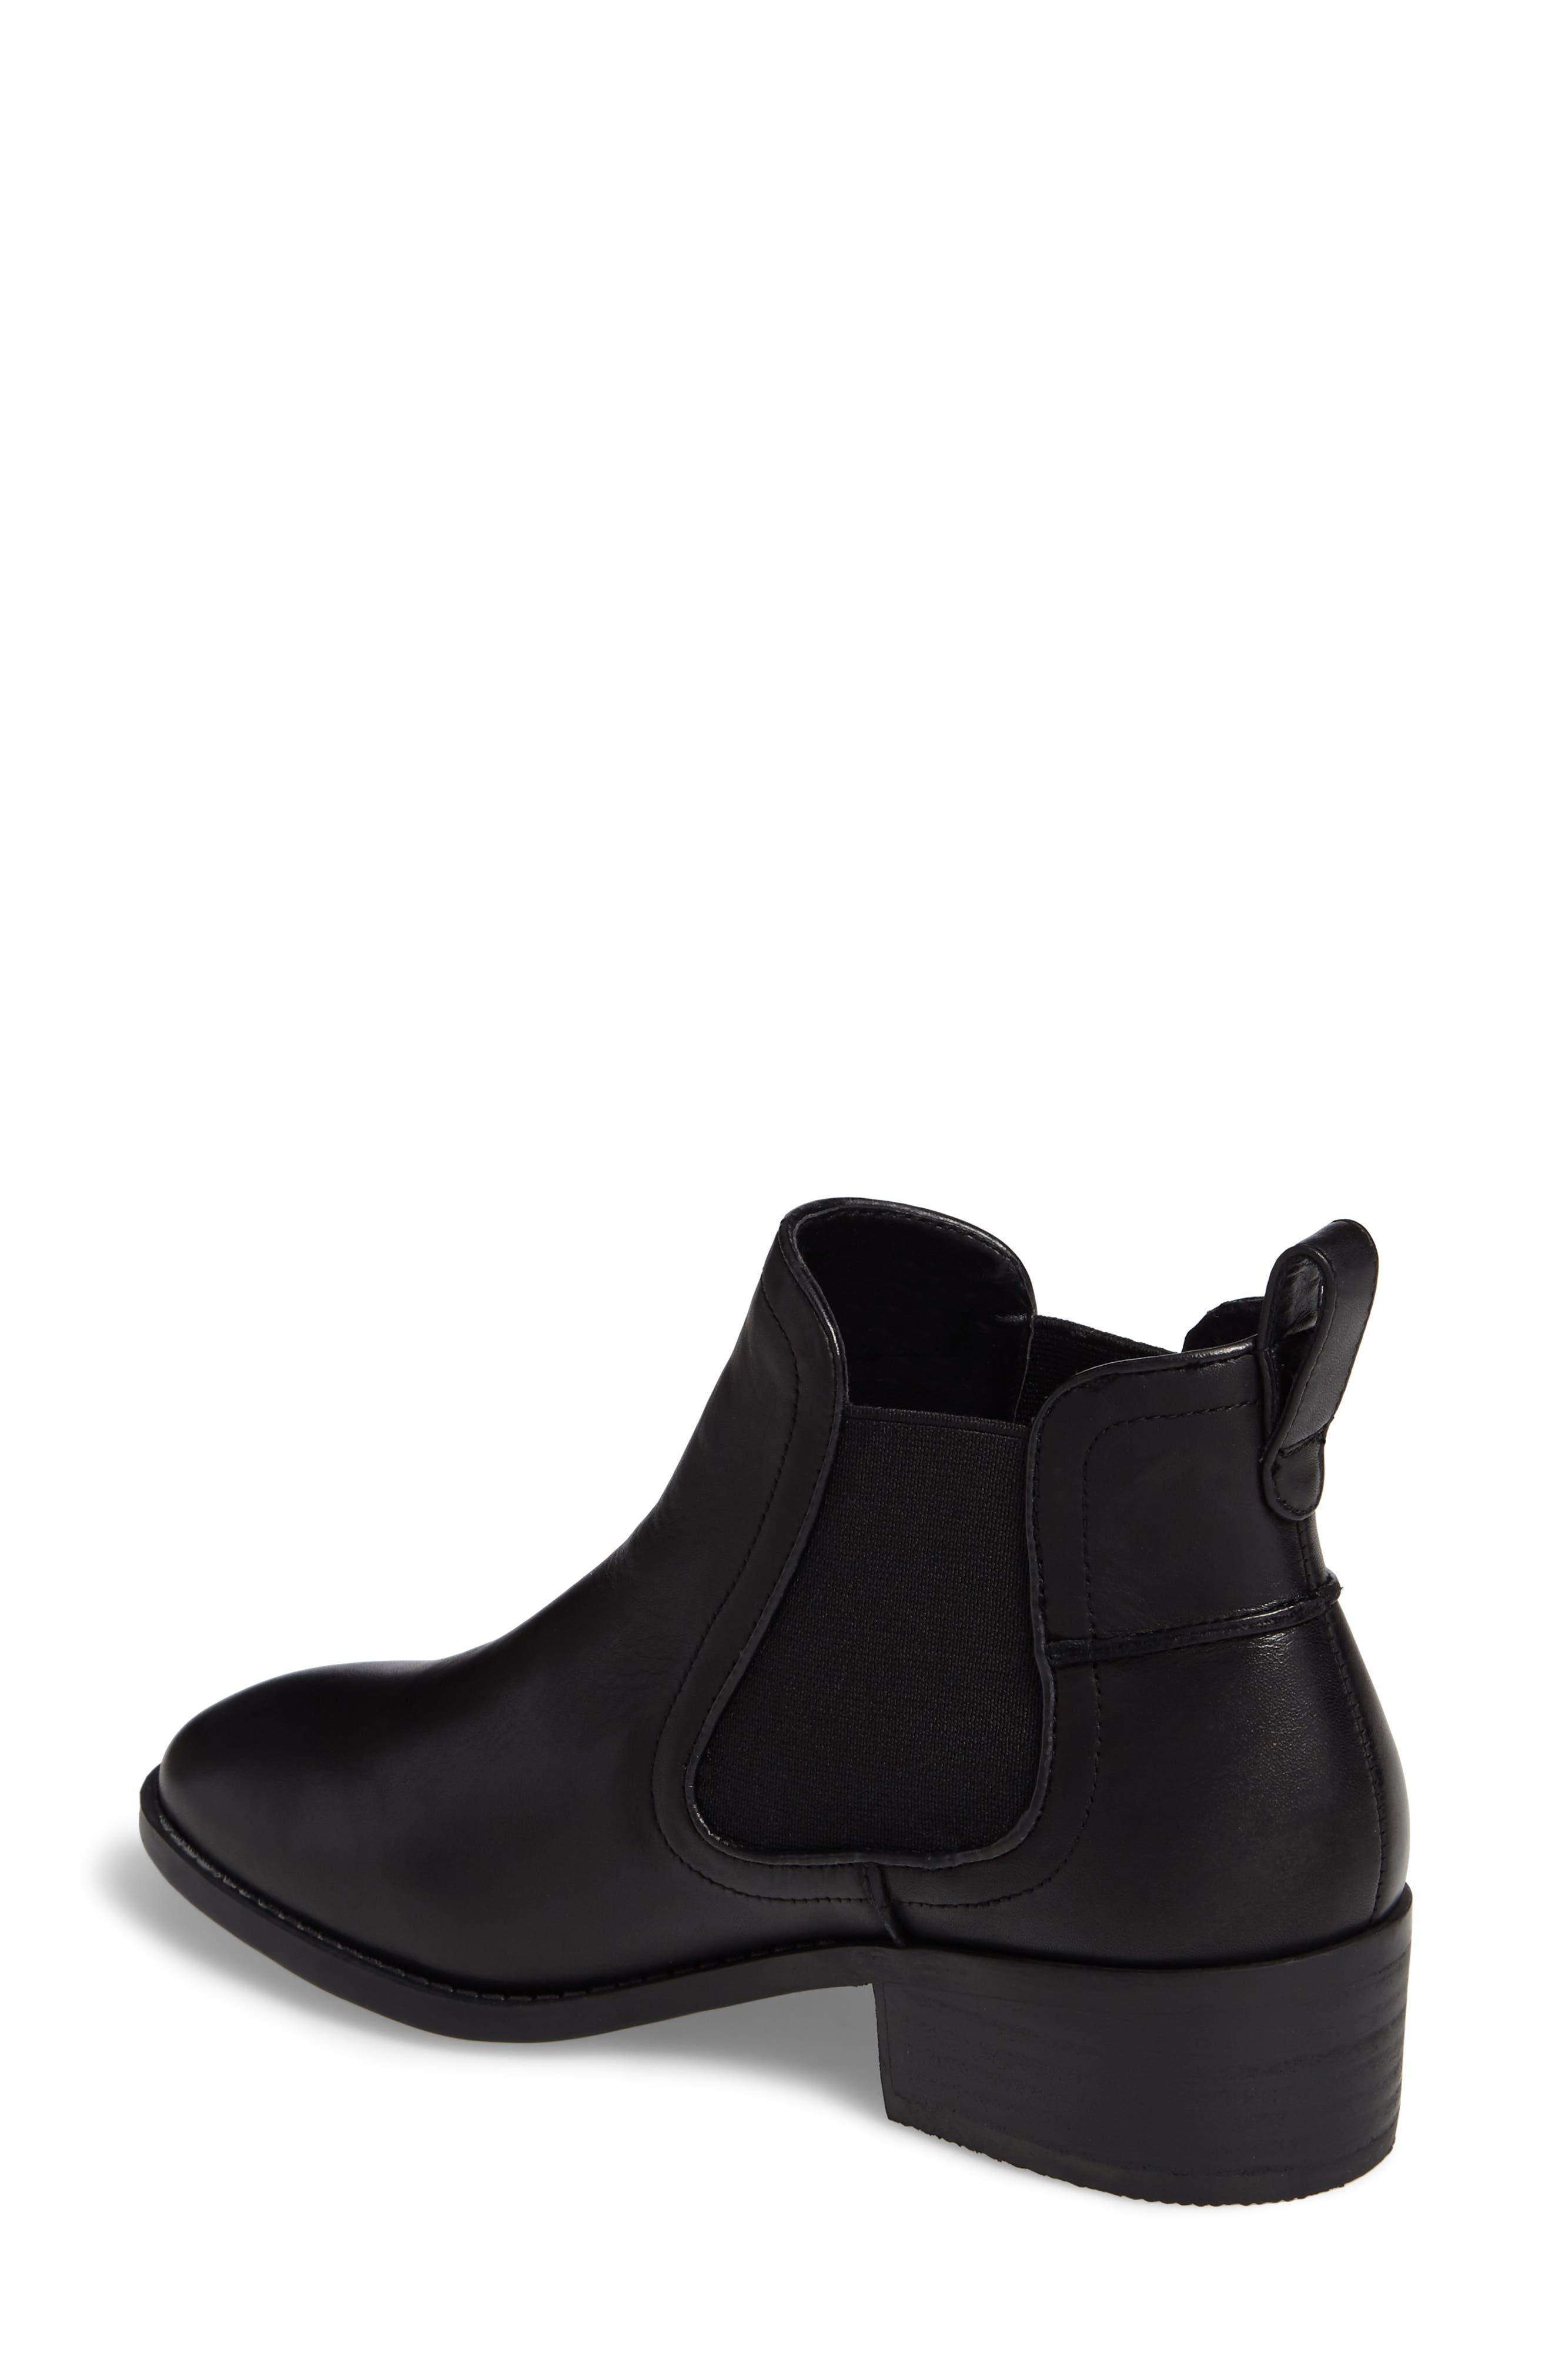 Dicey Chelsea Boot,                             Alternate thumbnail 2, color,                             Black Leather